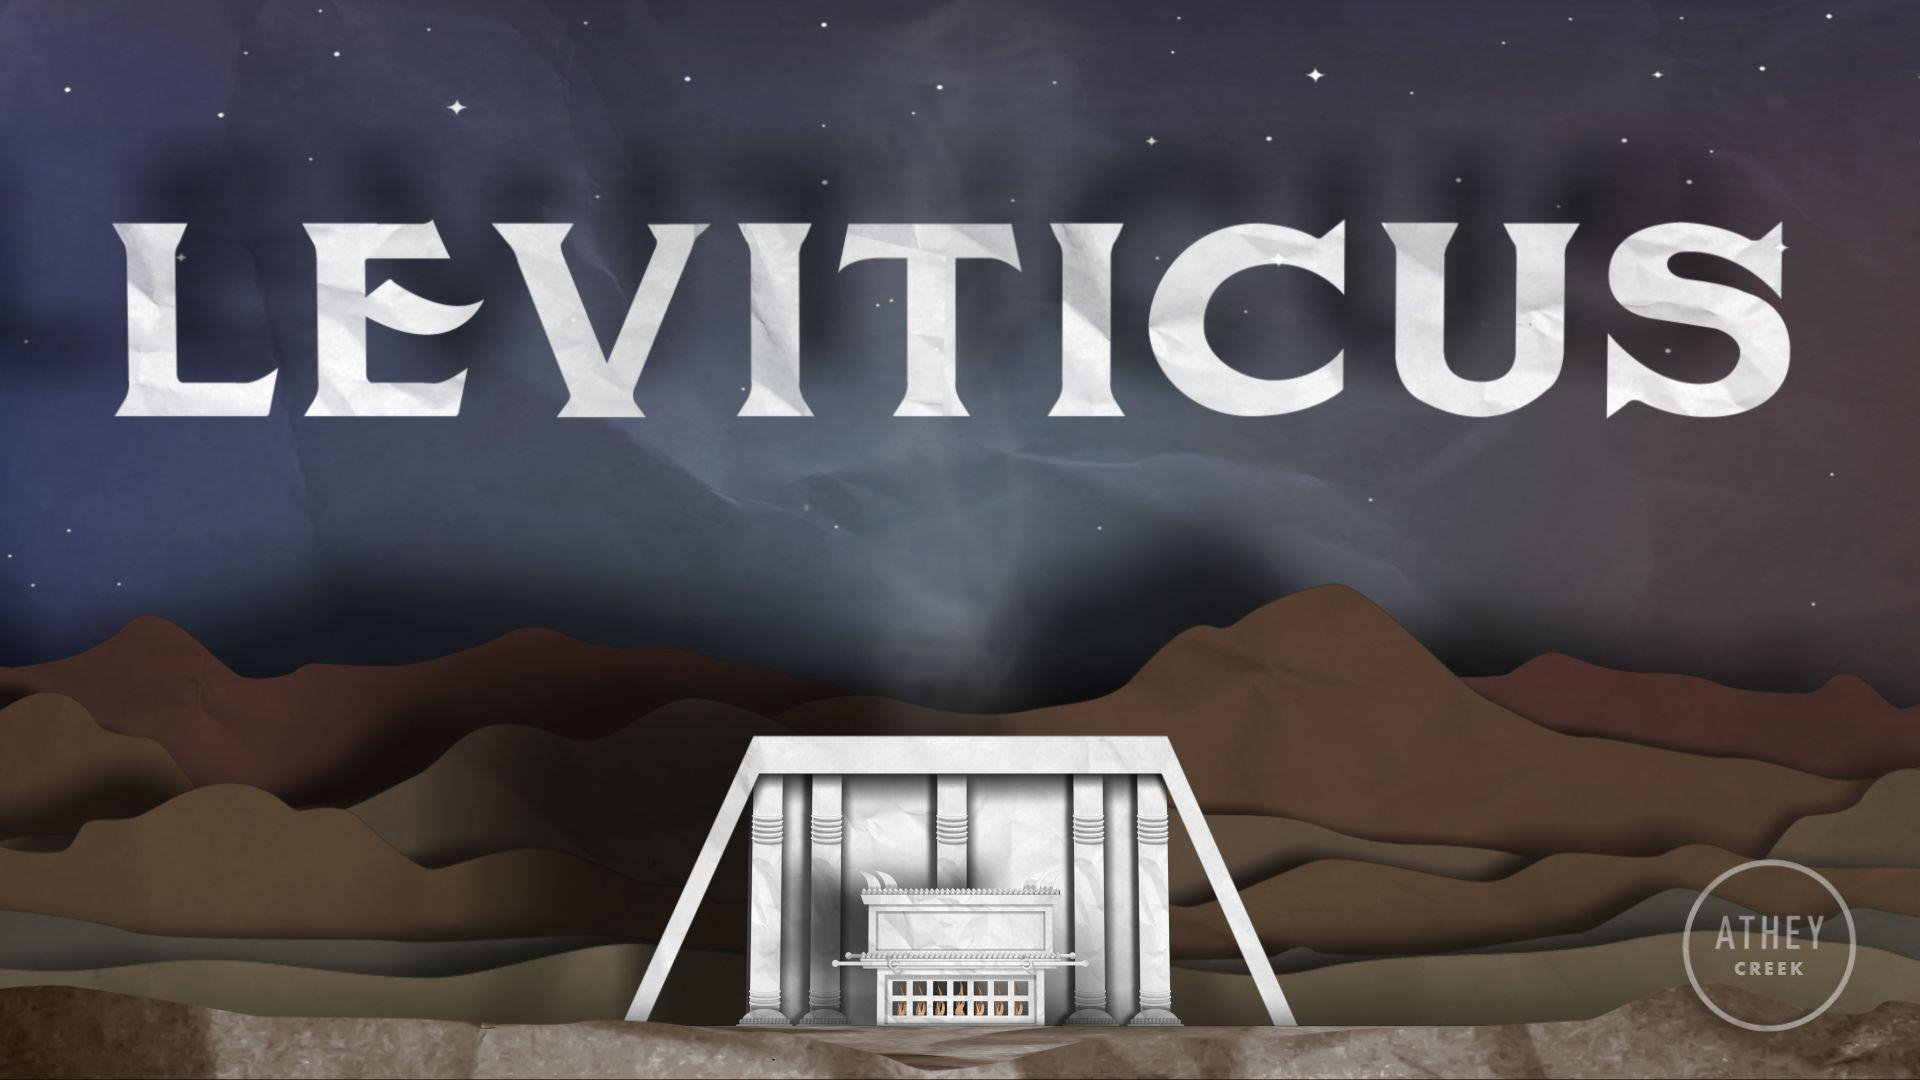 Teaching artwork for Leviticus